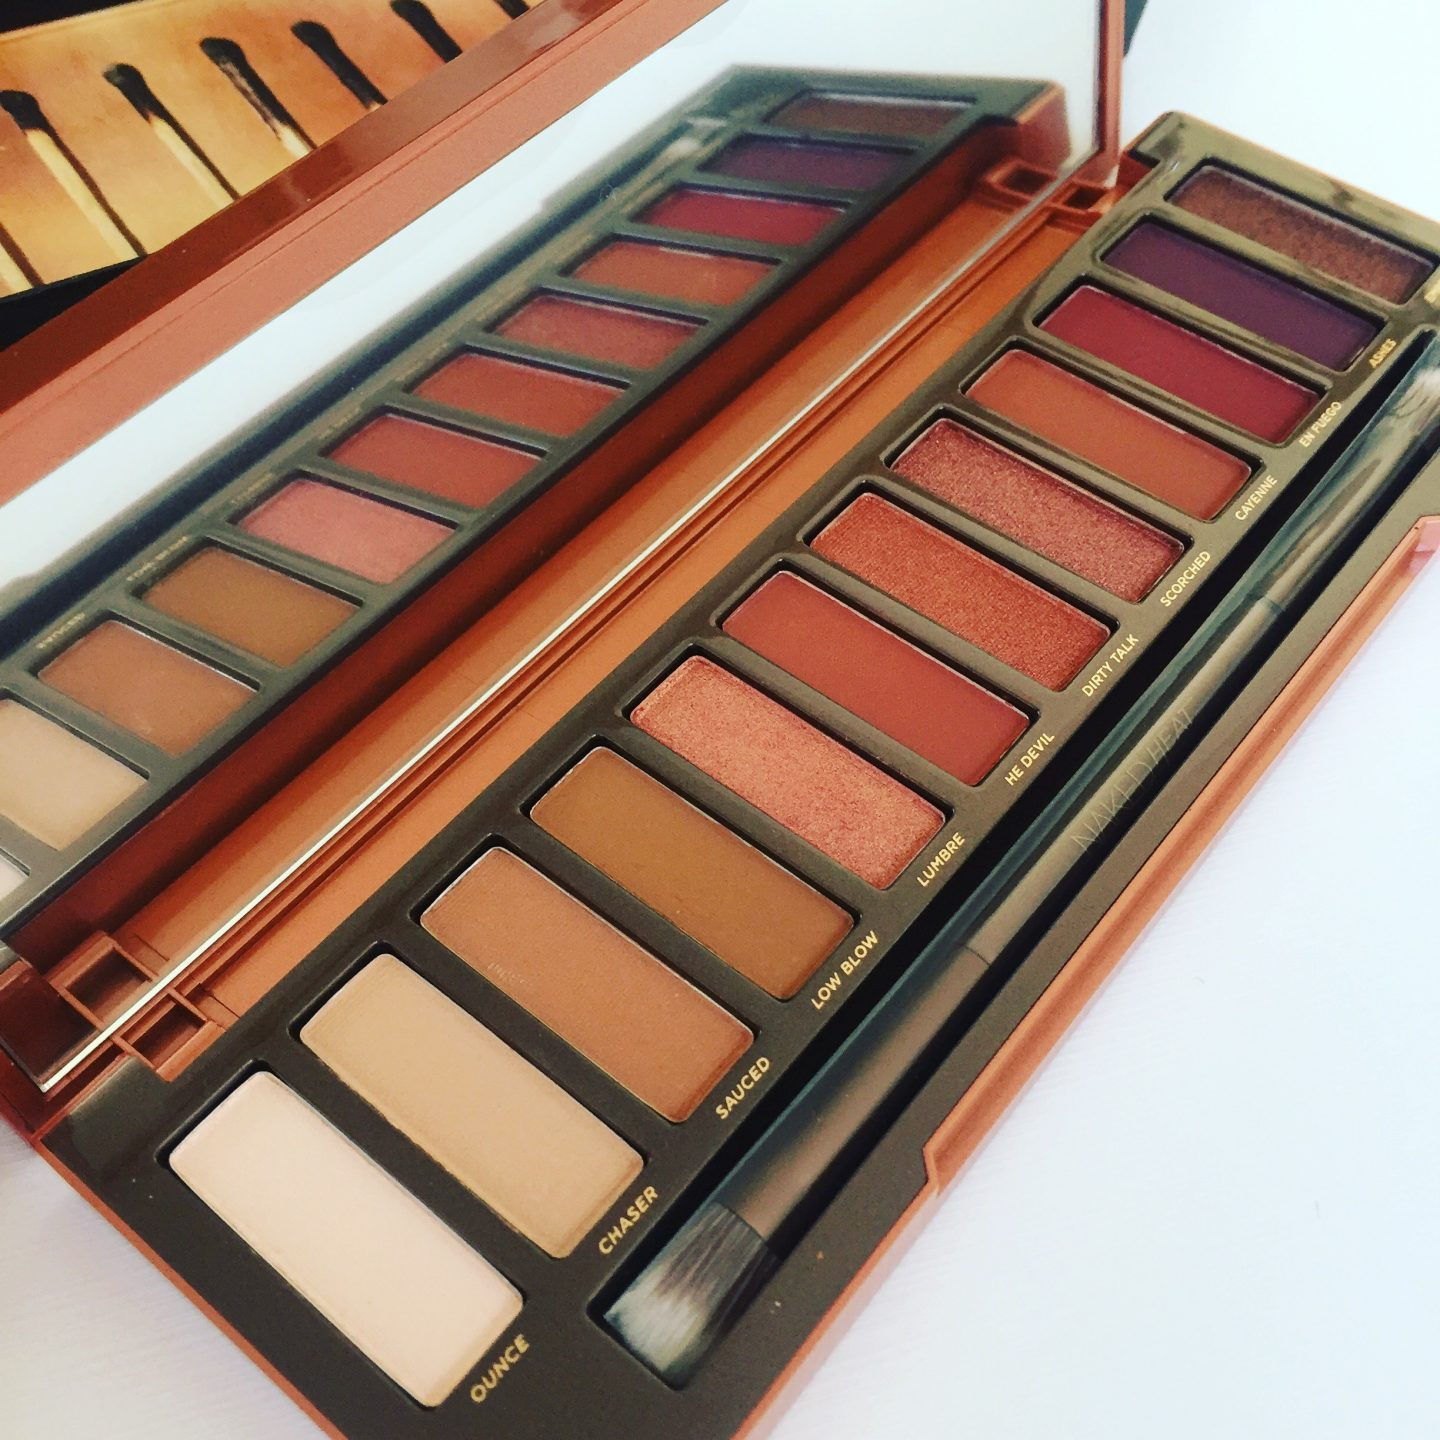 REVIEW | Urban Decay Naked Heat Palette